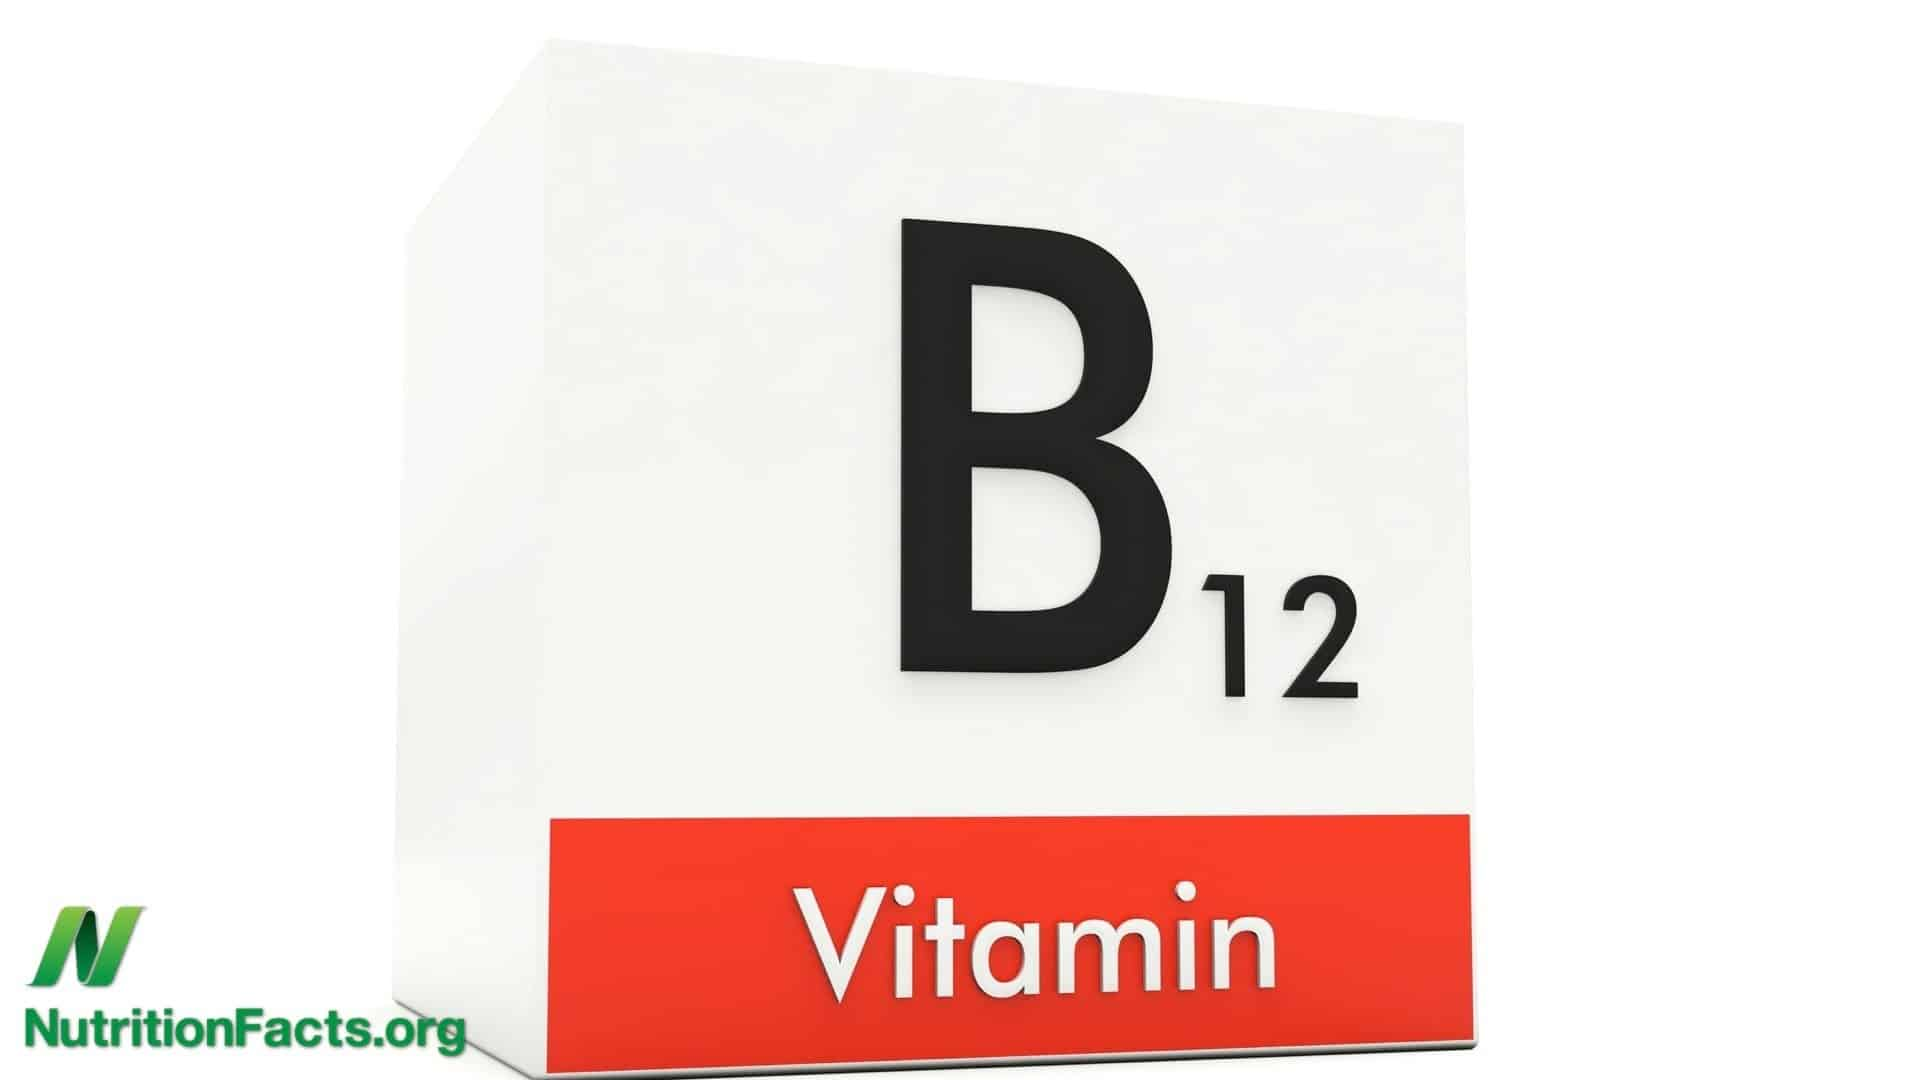 Vitamin B12 Recommendation Change